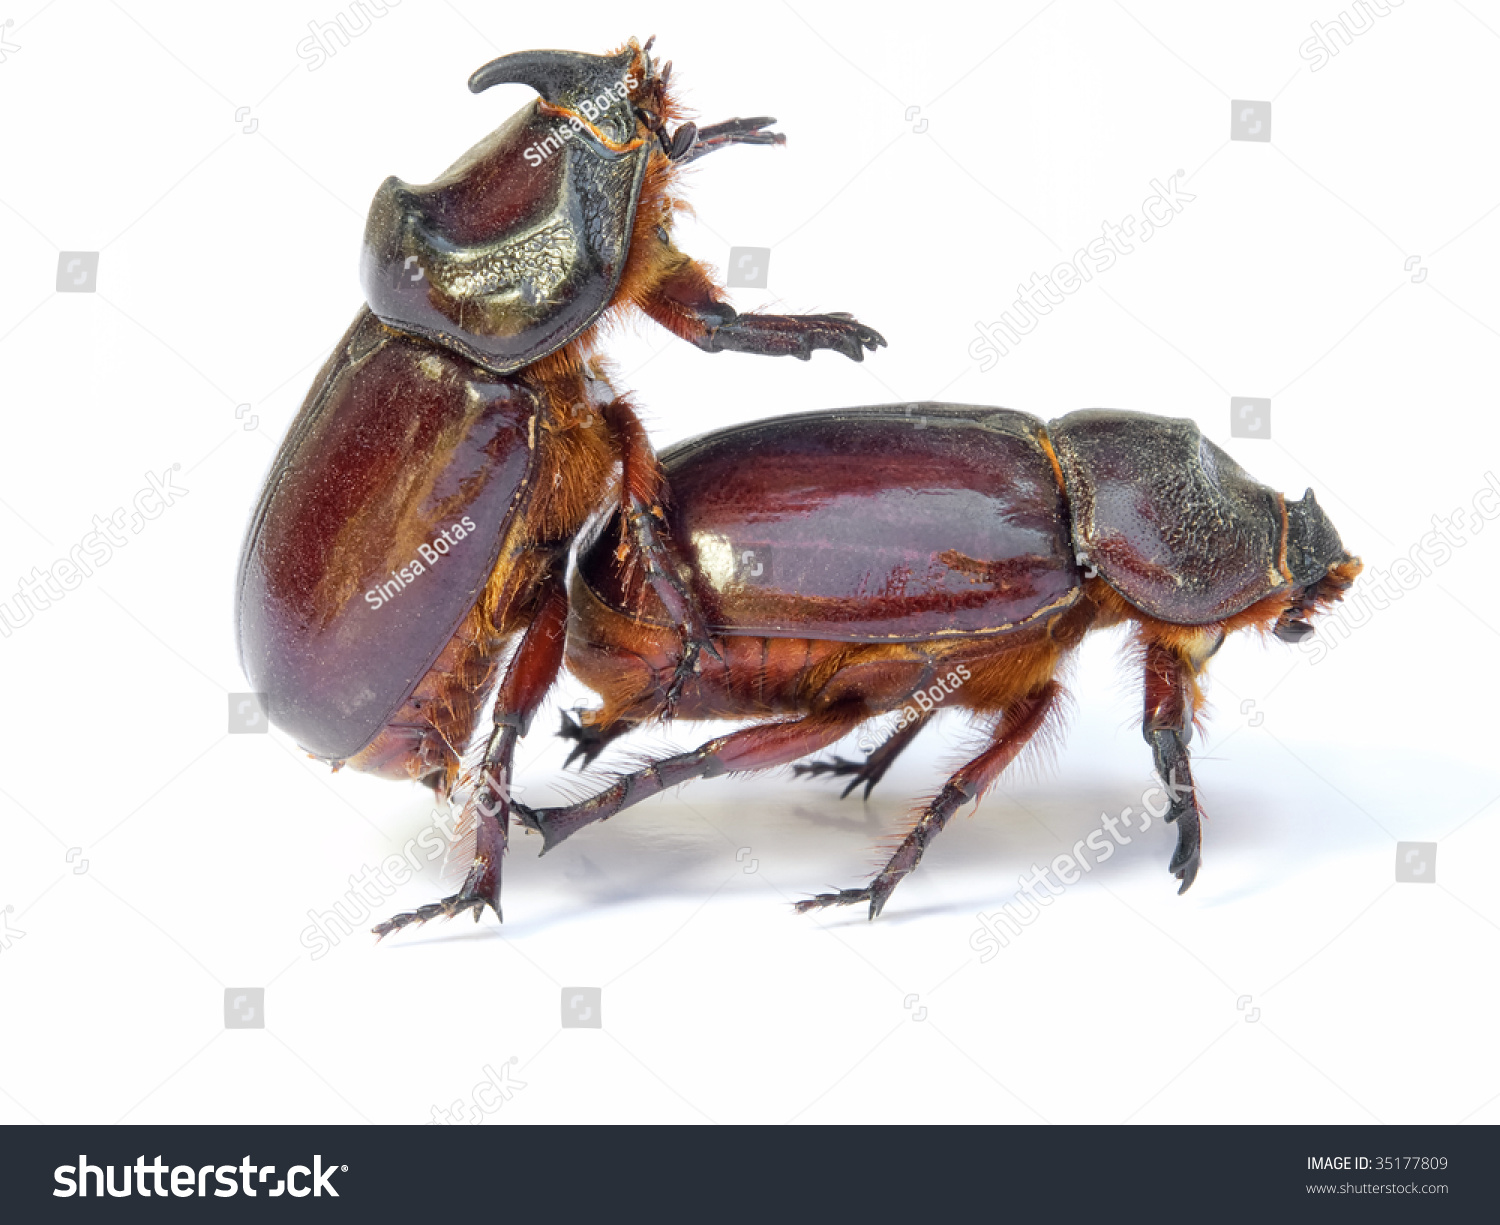 Insect Sex Pics 102